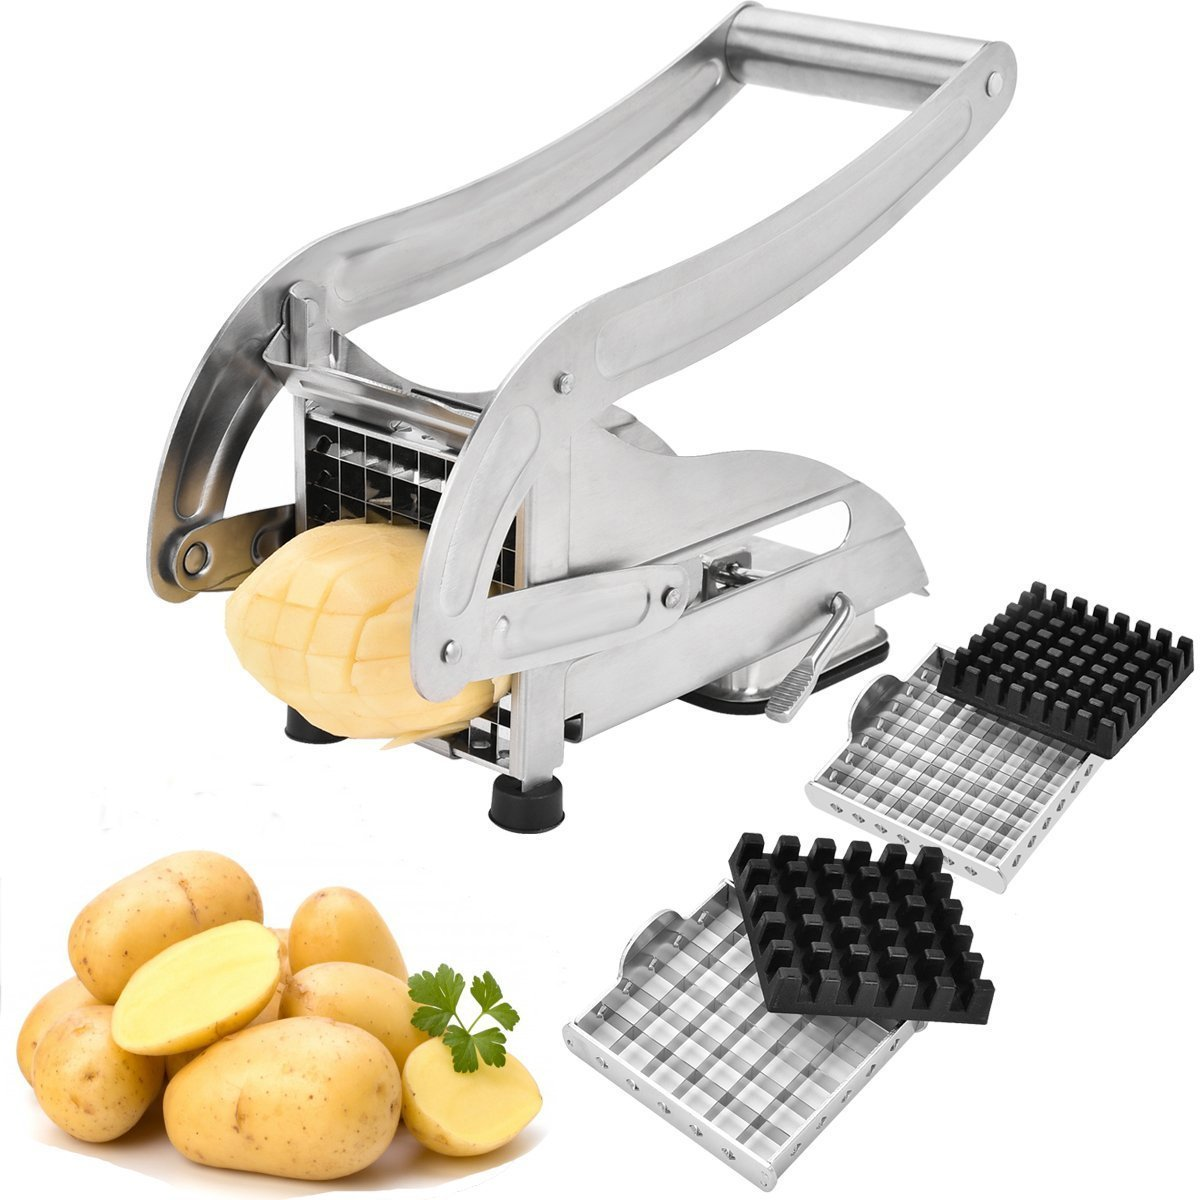 French Fry Cutter, Stainless Steel Potato Slicer Veggies Chopper and Dicer Potato Fries Maker with 2 Size Interchangeable Blades and Strong-Hold Suction Pads